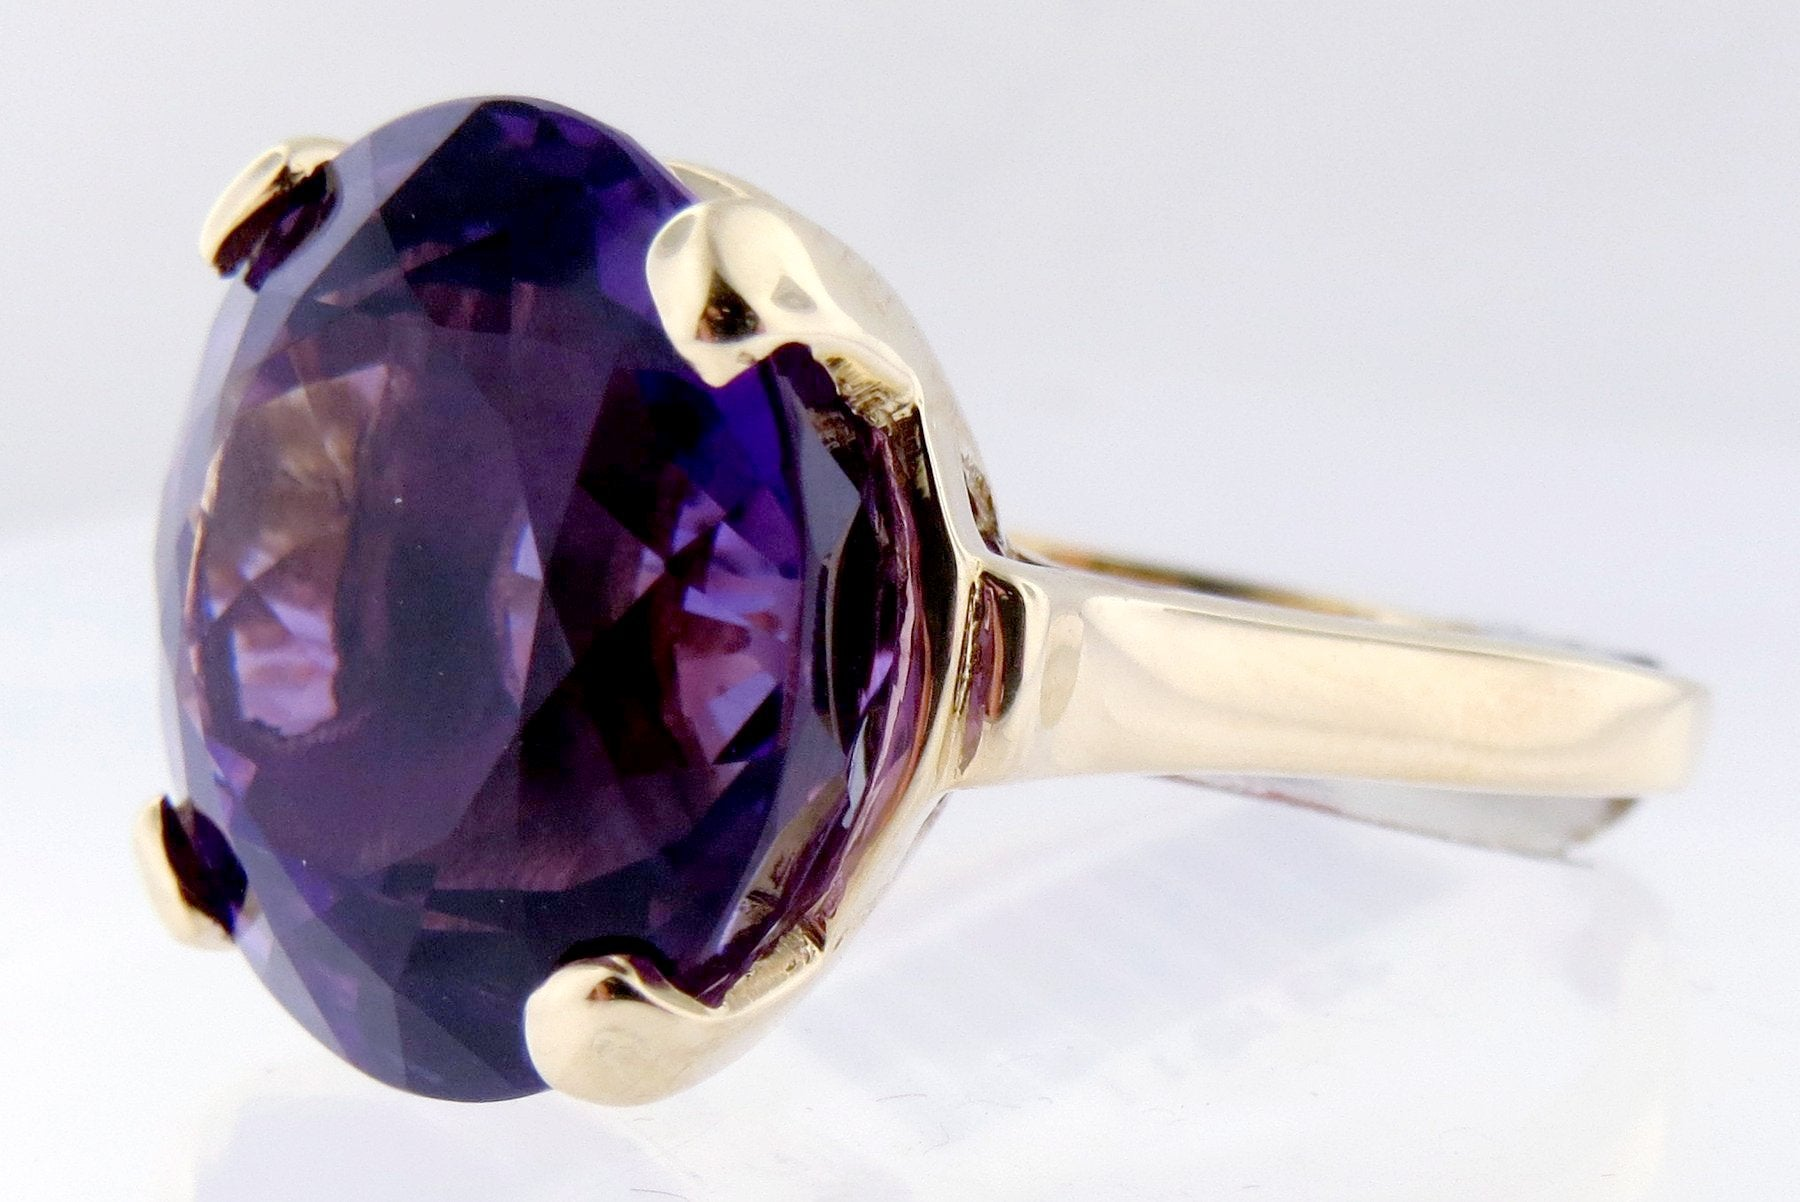 pin purple breathtaking ideas stunning ring engagement a amethyst rings wedding for halo